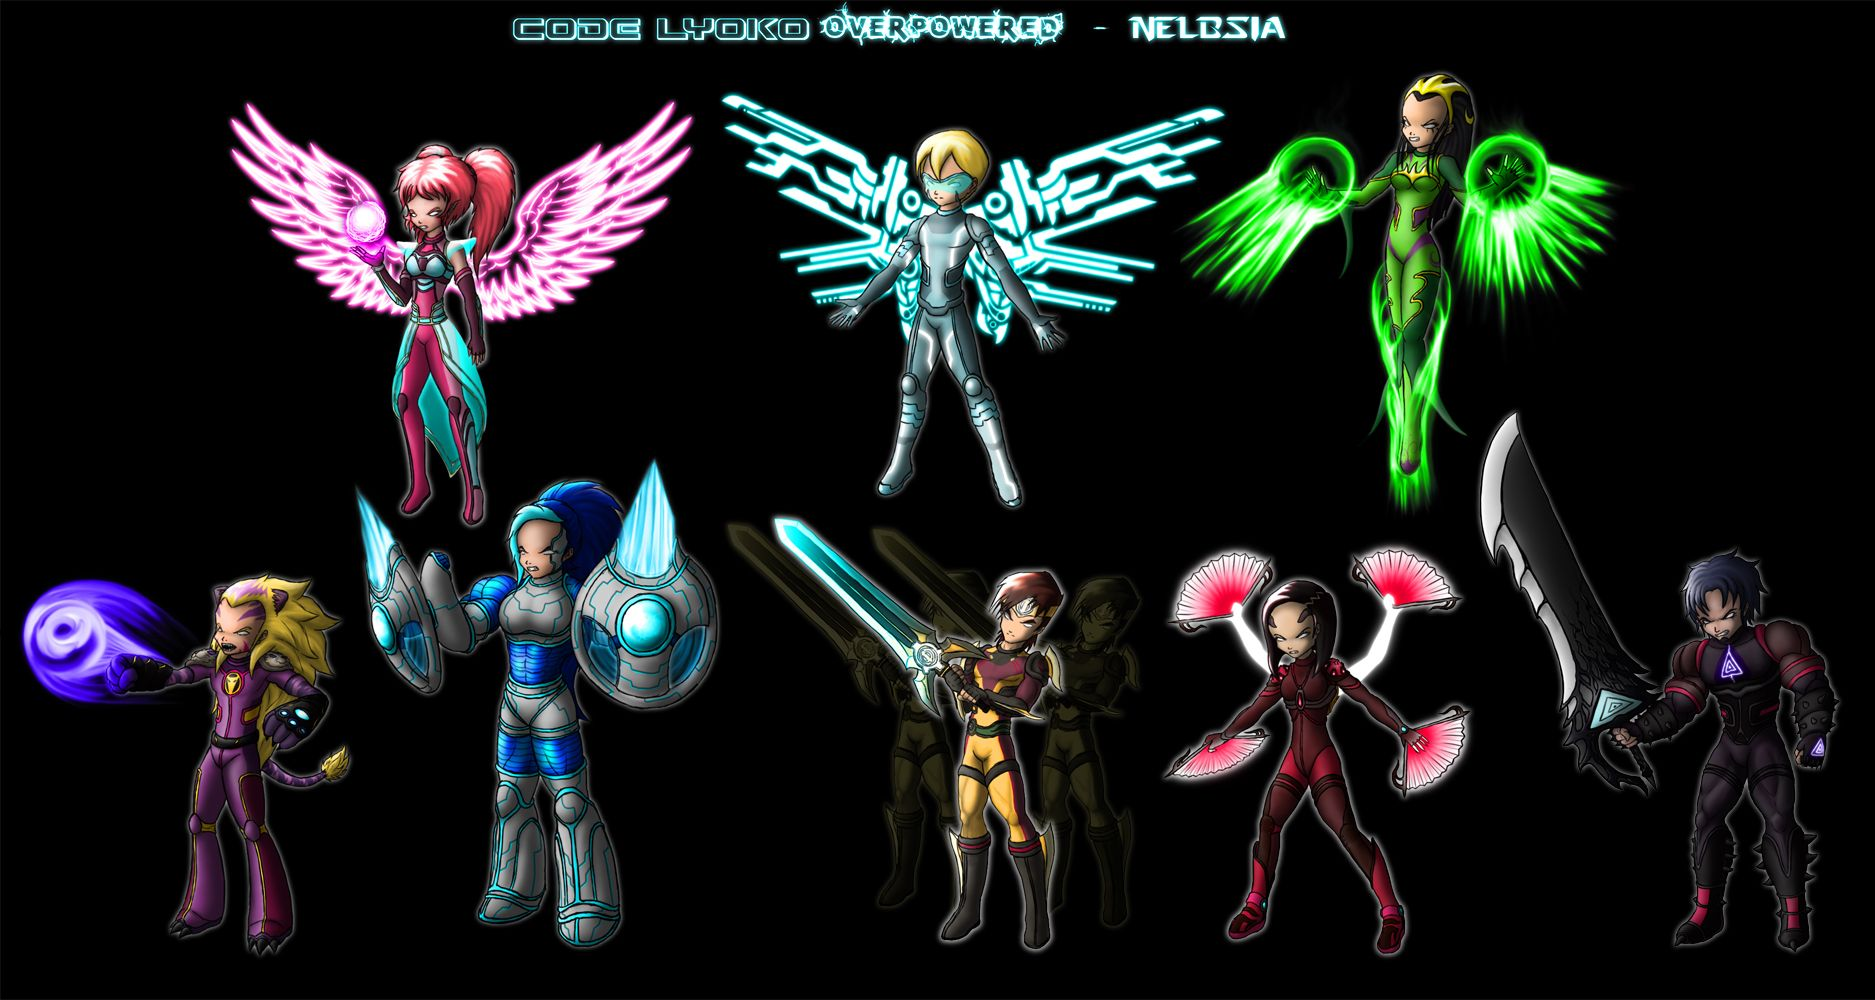 Pin by Marissa on Anime (With images) Code lyoko, Code